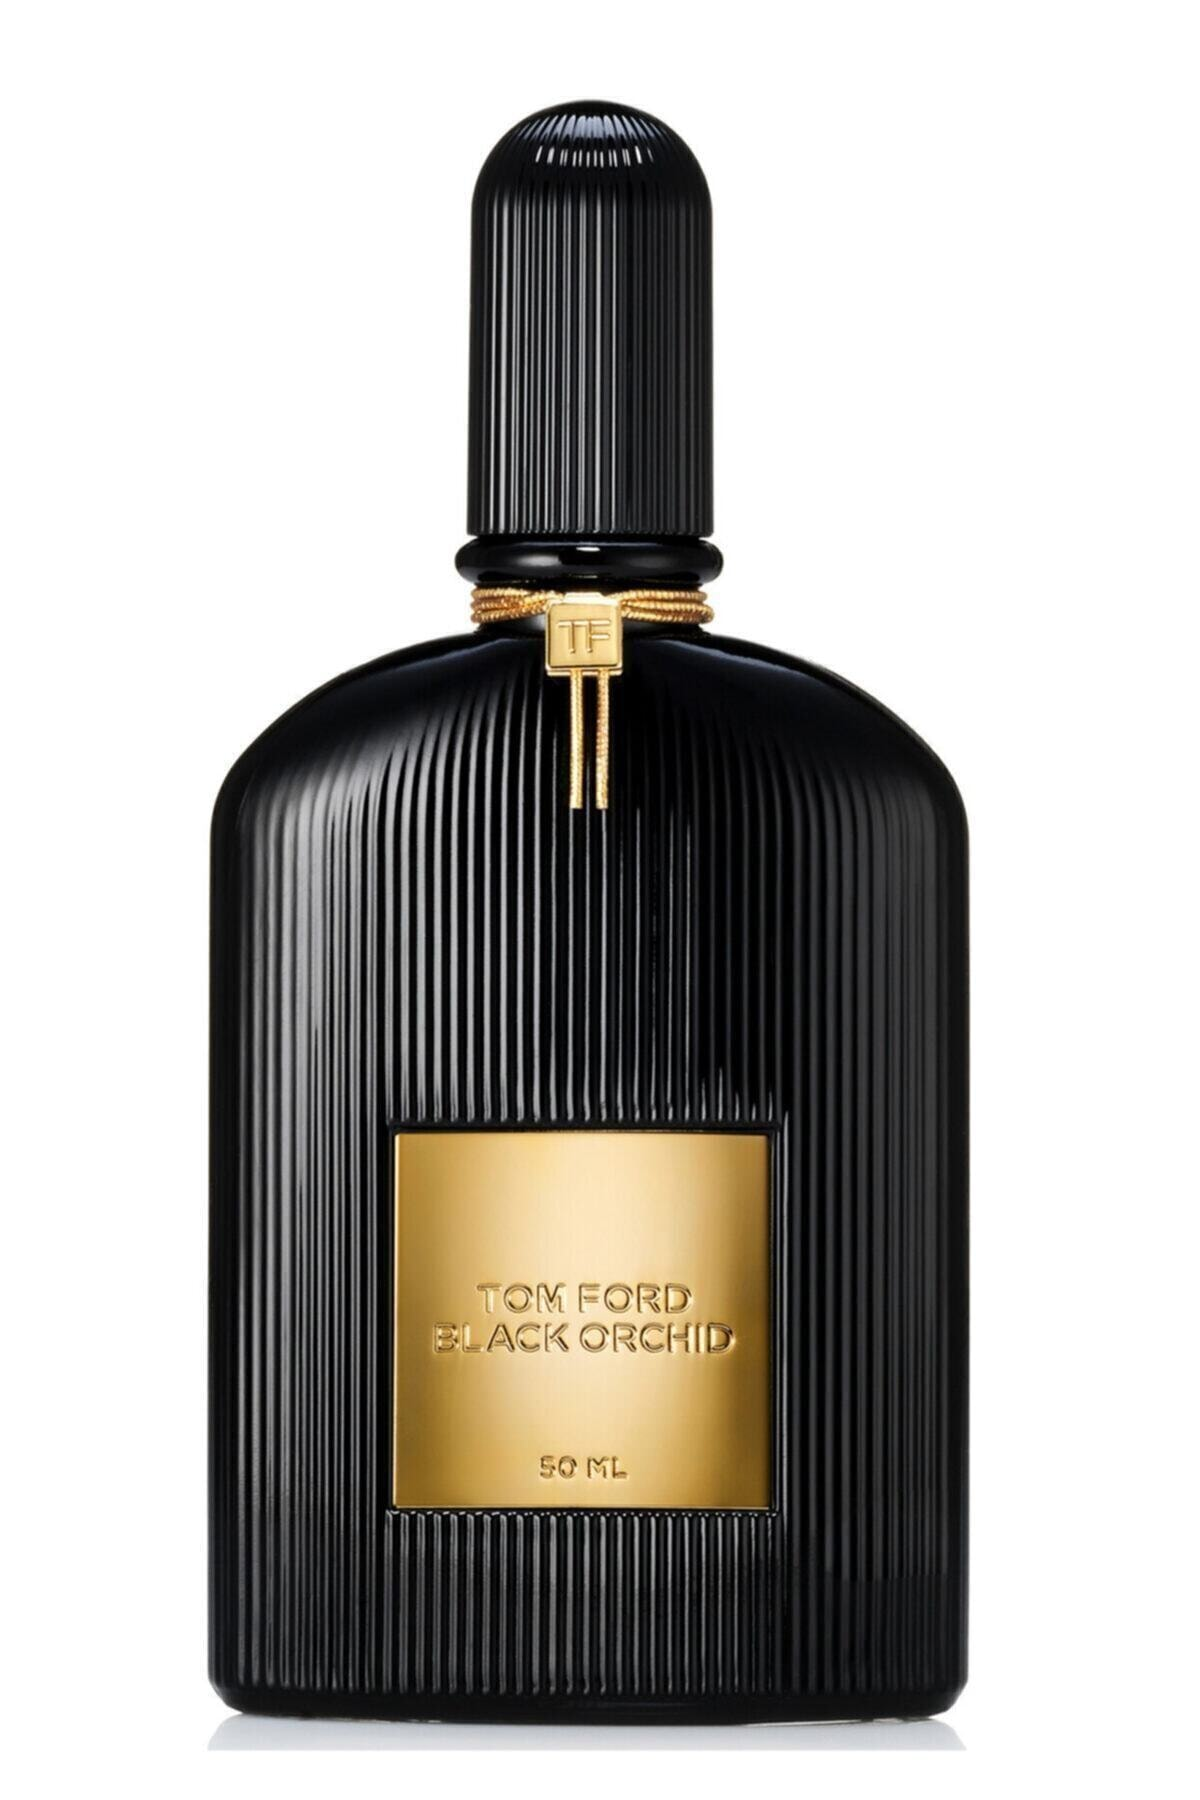 Tom Ford Black Orchid Edp 50 ml 1